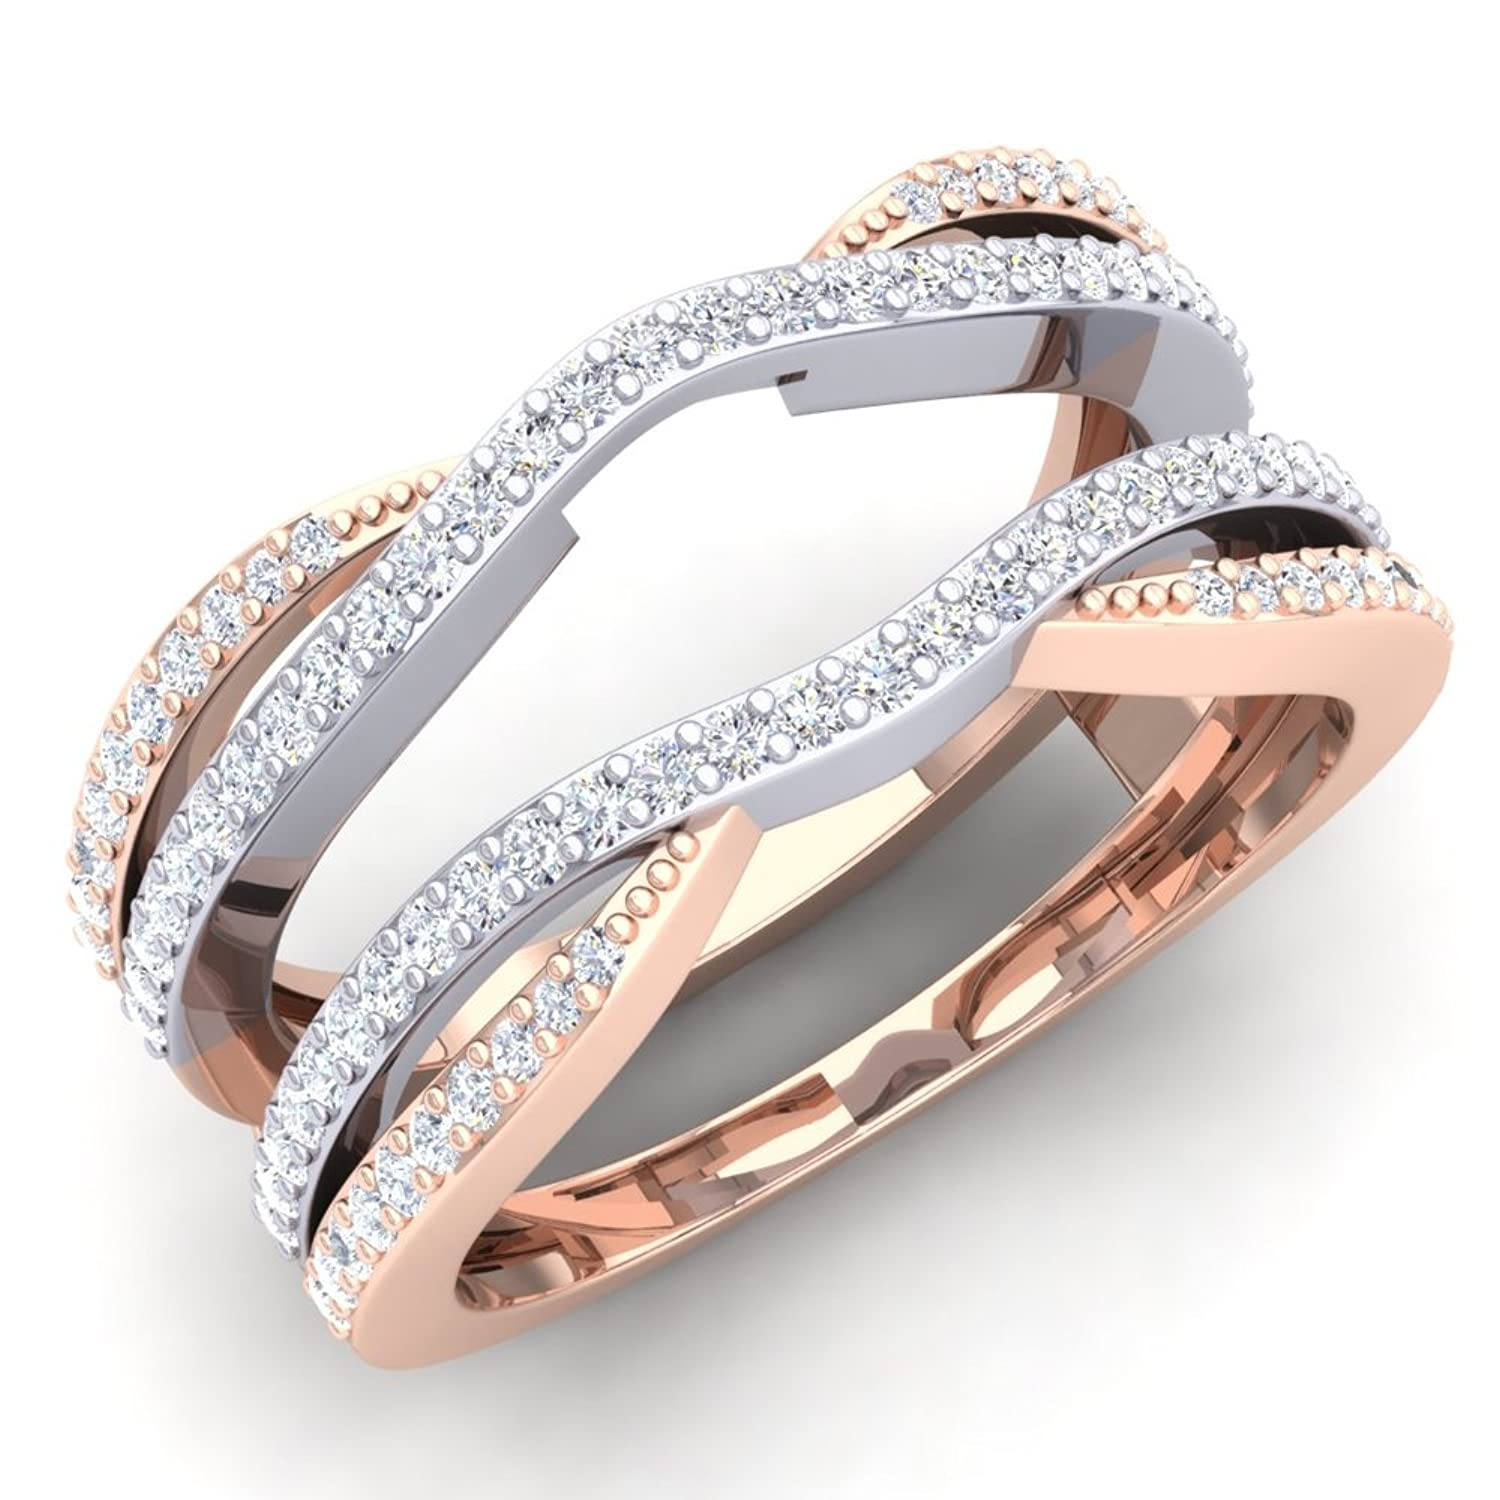 edges jupiter collections wedding two ring product mens inc wb brushed sku polished categories center band tags bands tone rings crown jewelry